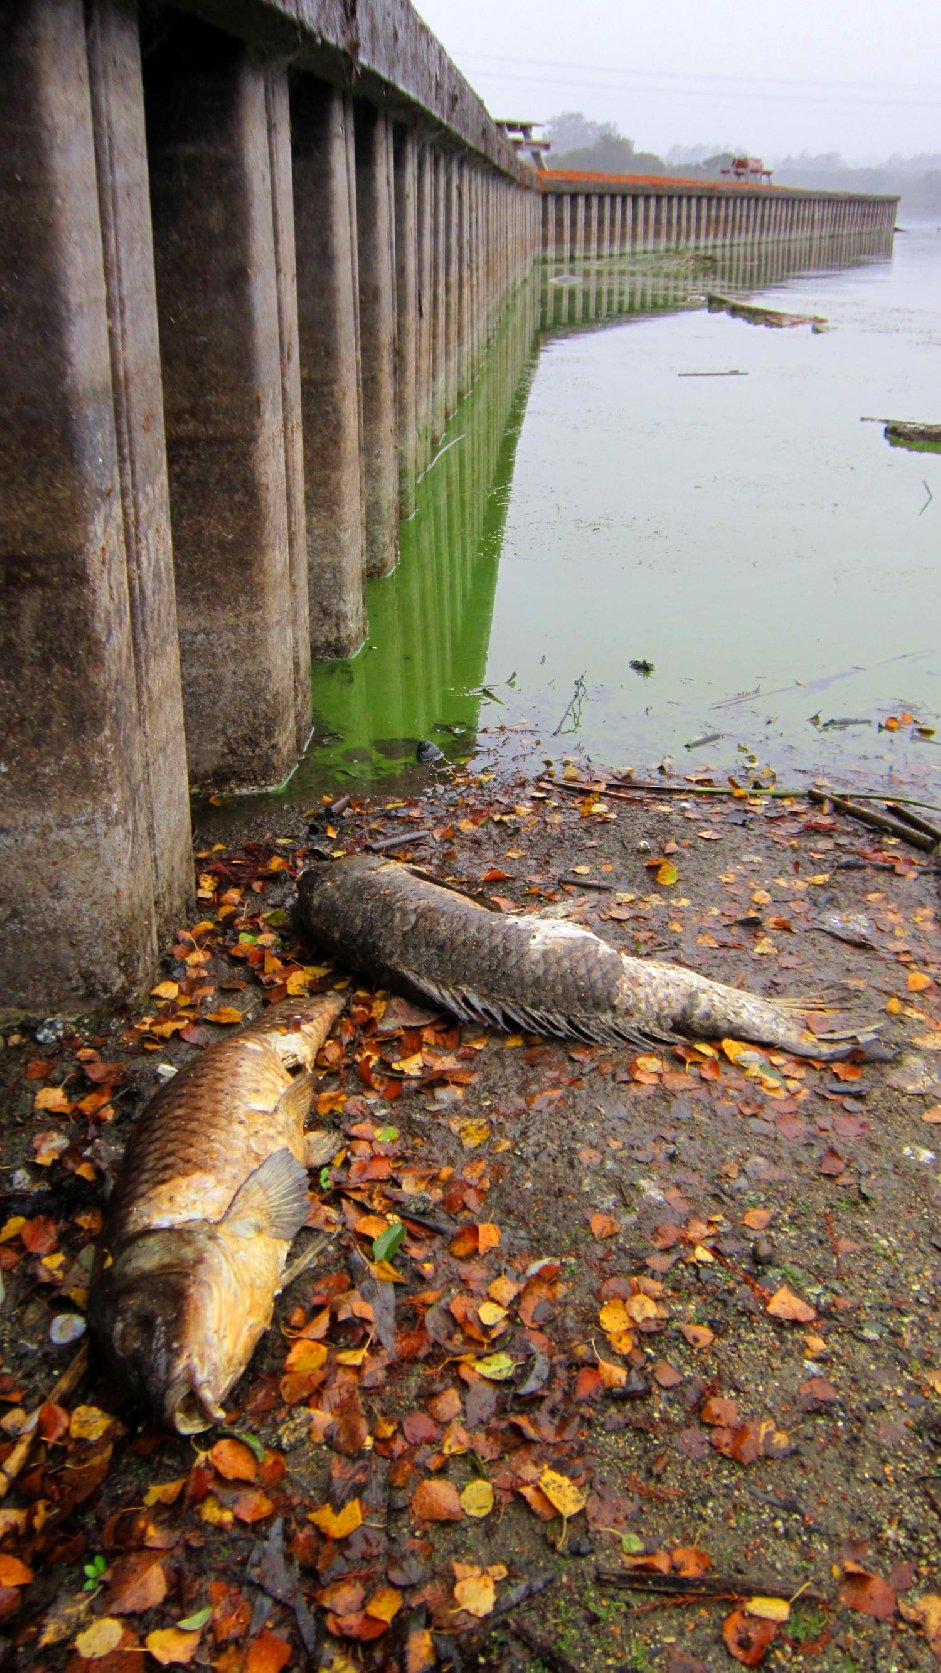 Carp suffocated by an algal bloom in Pinto Lake. (Image: Robert Ketley)